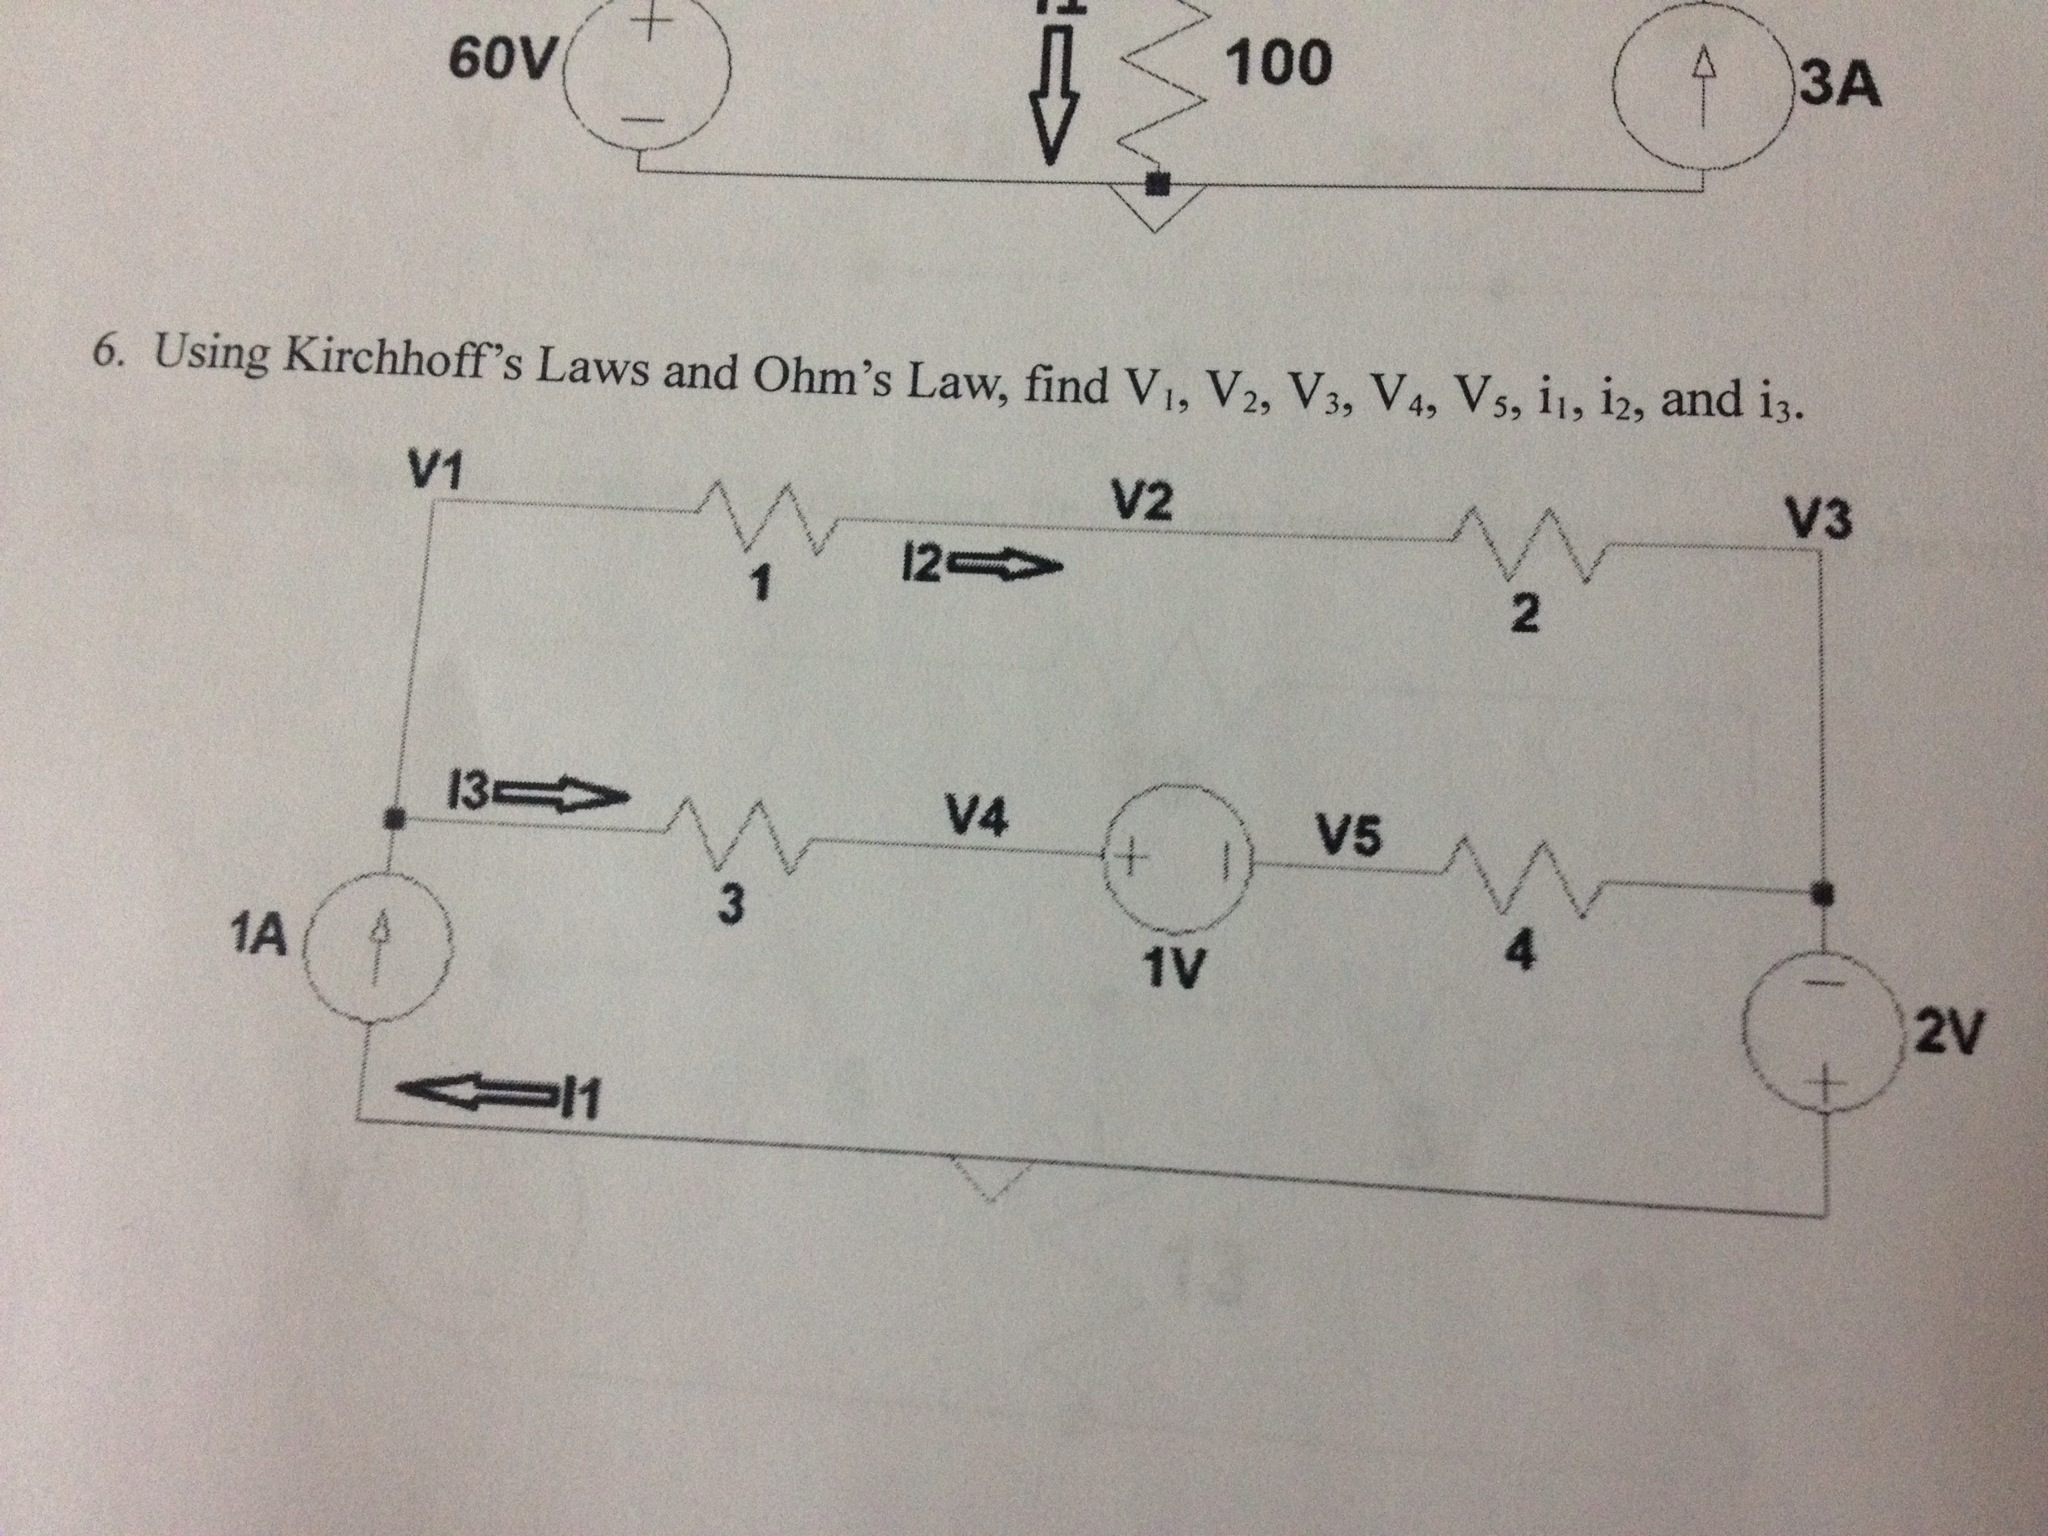 Using Kirchhoff's Laws and Ohm's Law, find V1, V2,